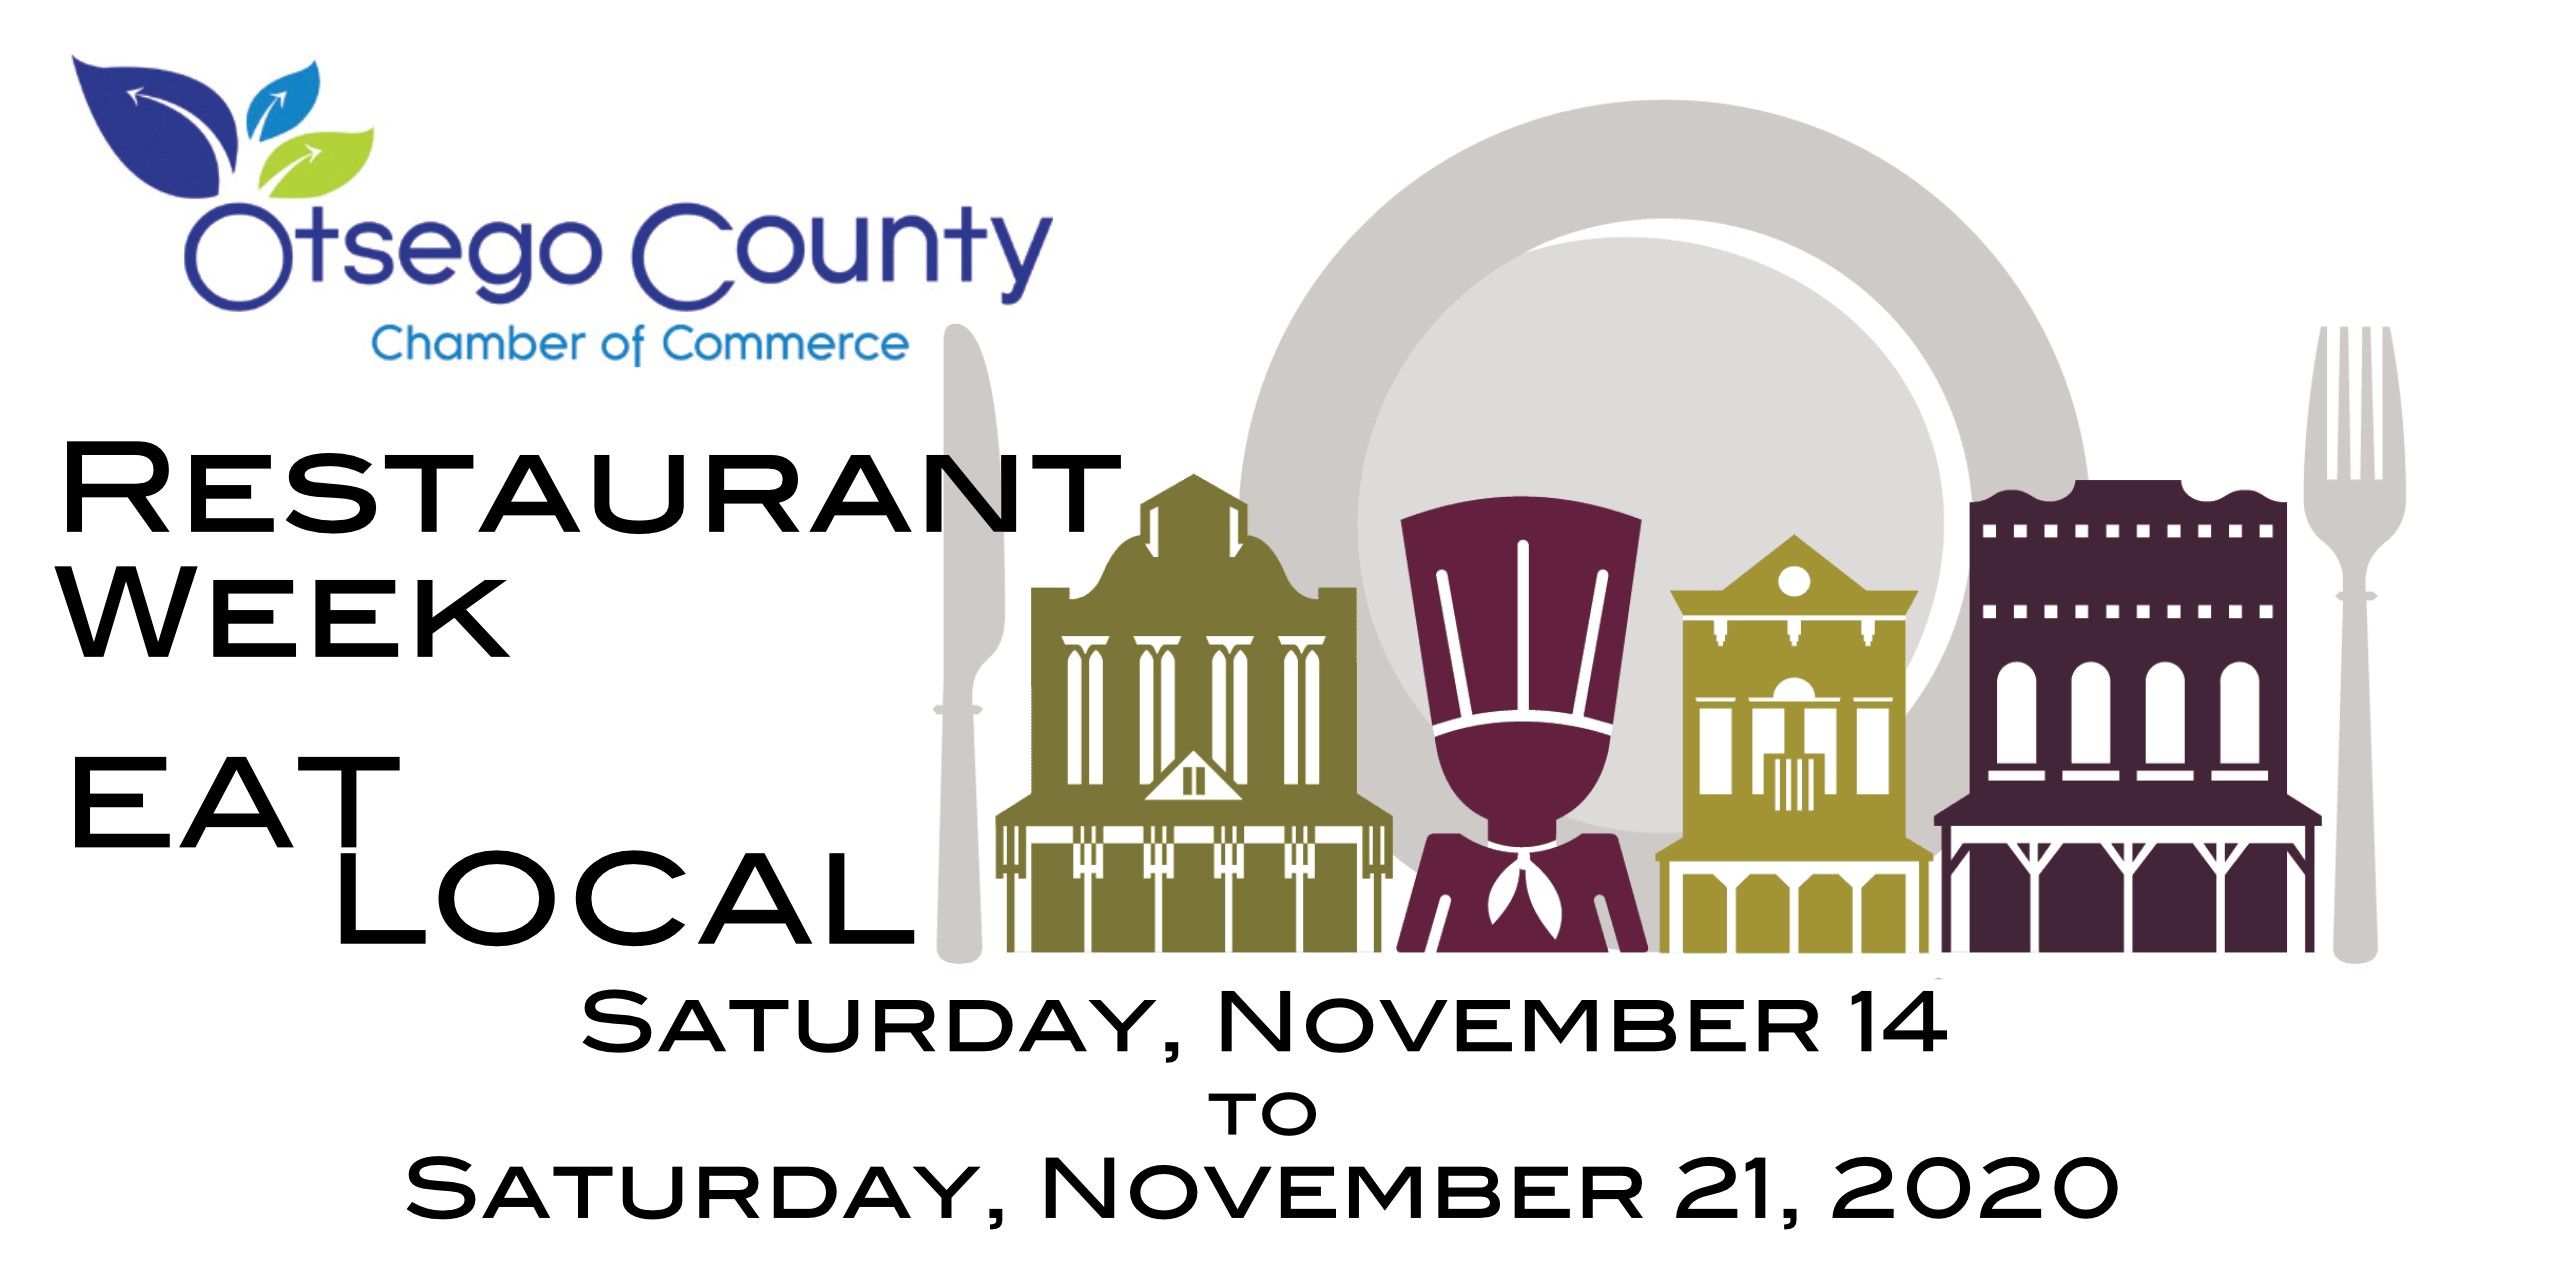 Eat Local Restaurant Week coming November 14- November 21, 2020 All are welcome!